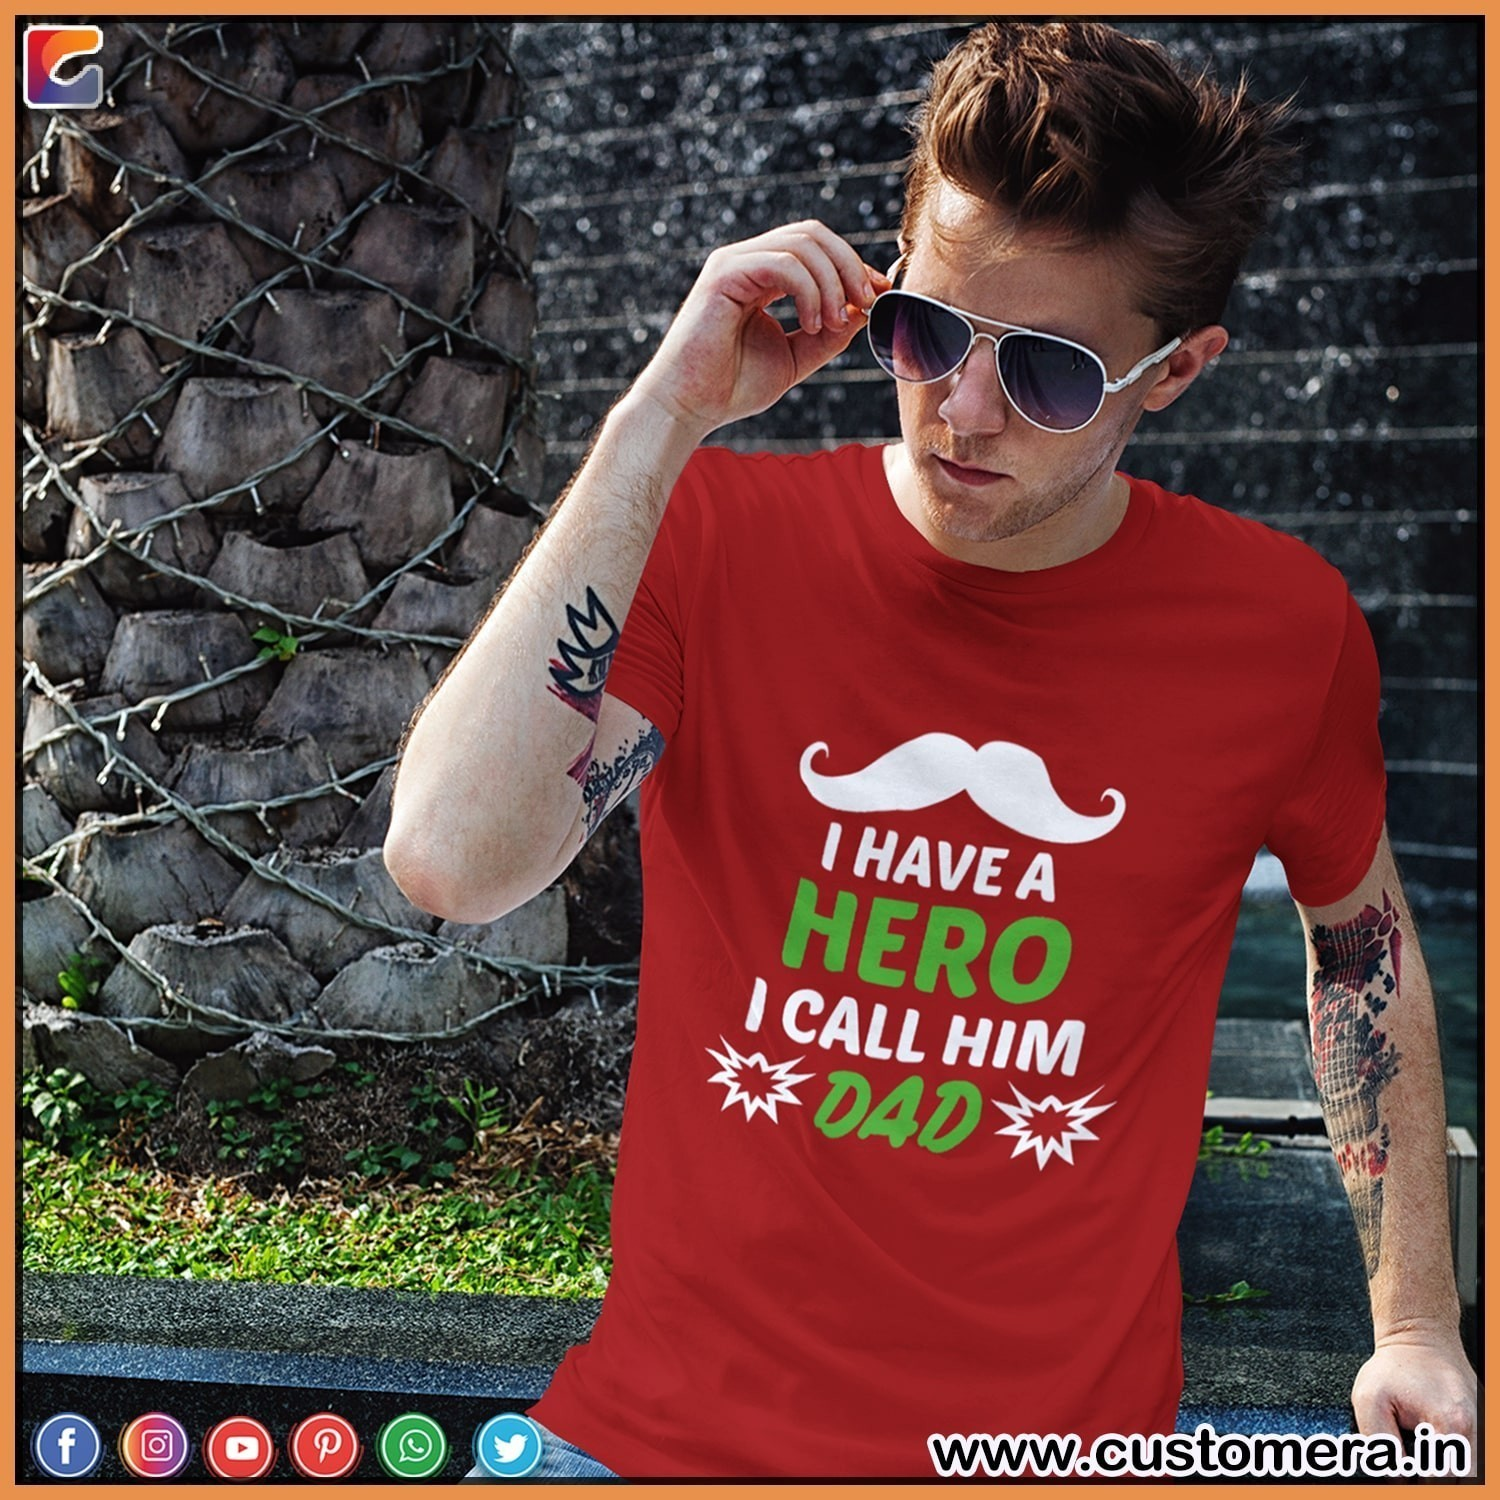 Shop Cool Designer Dad Quote Tshirt at CustomEra